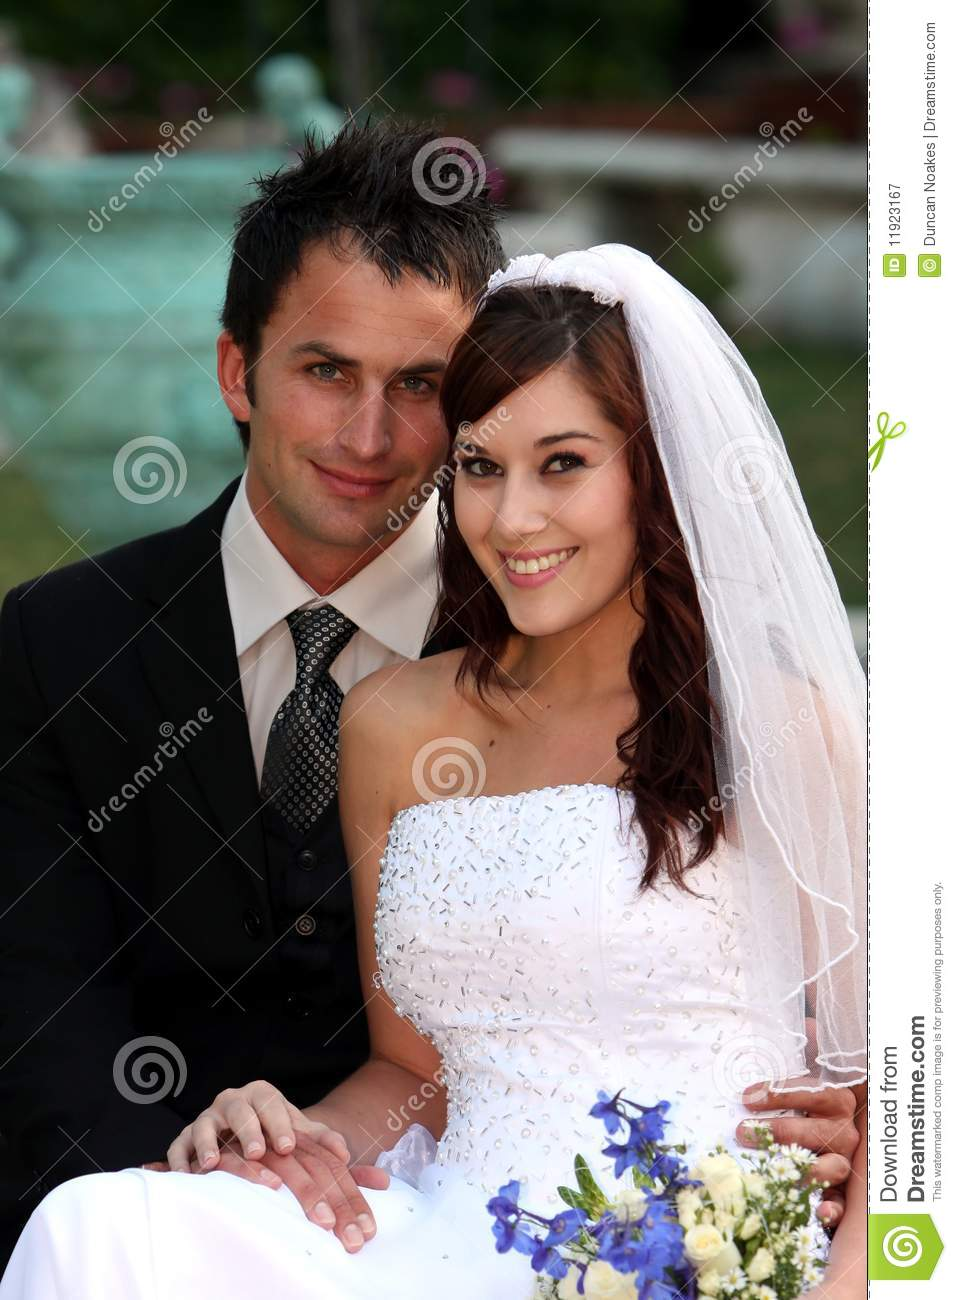 Beautiful Wedding Couple Stock Image Image Of Girl. Wedding Locations Eastern Shore Md. Wedding Ceremony Music Cd. Wedding Packages Kidderminster. Wedding Pictures Bride Taller Than Groom. Wedding Costs Manila. Wedding Suits Trends 2016. Wedding Cakes Kalamazoo Mi. Wedding Planner Book In Stores